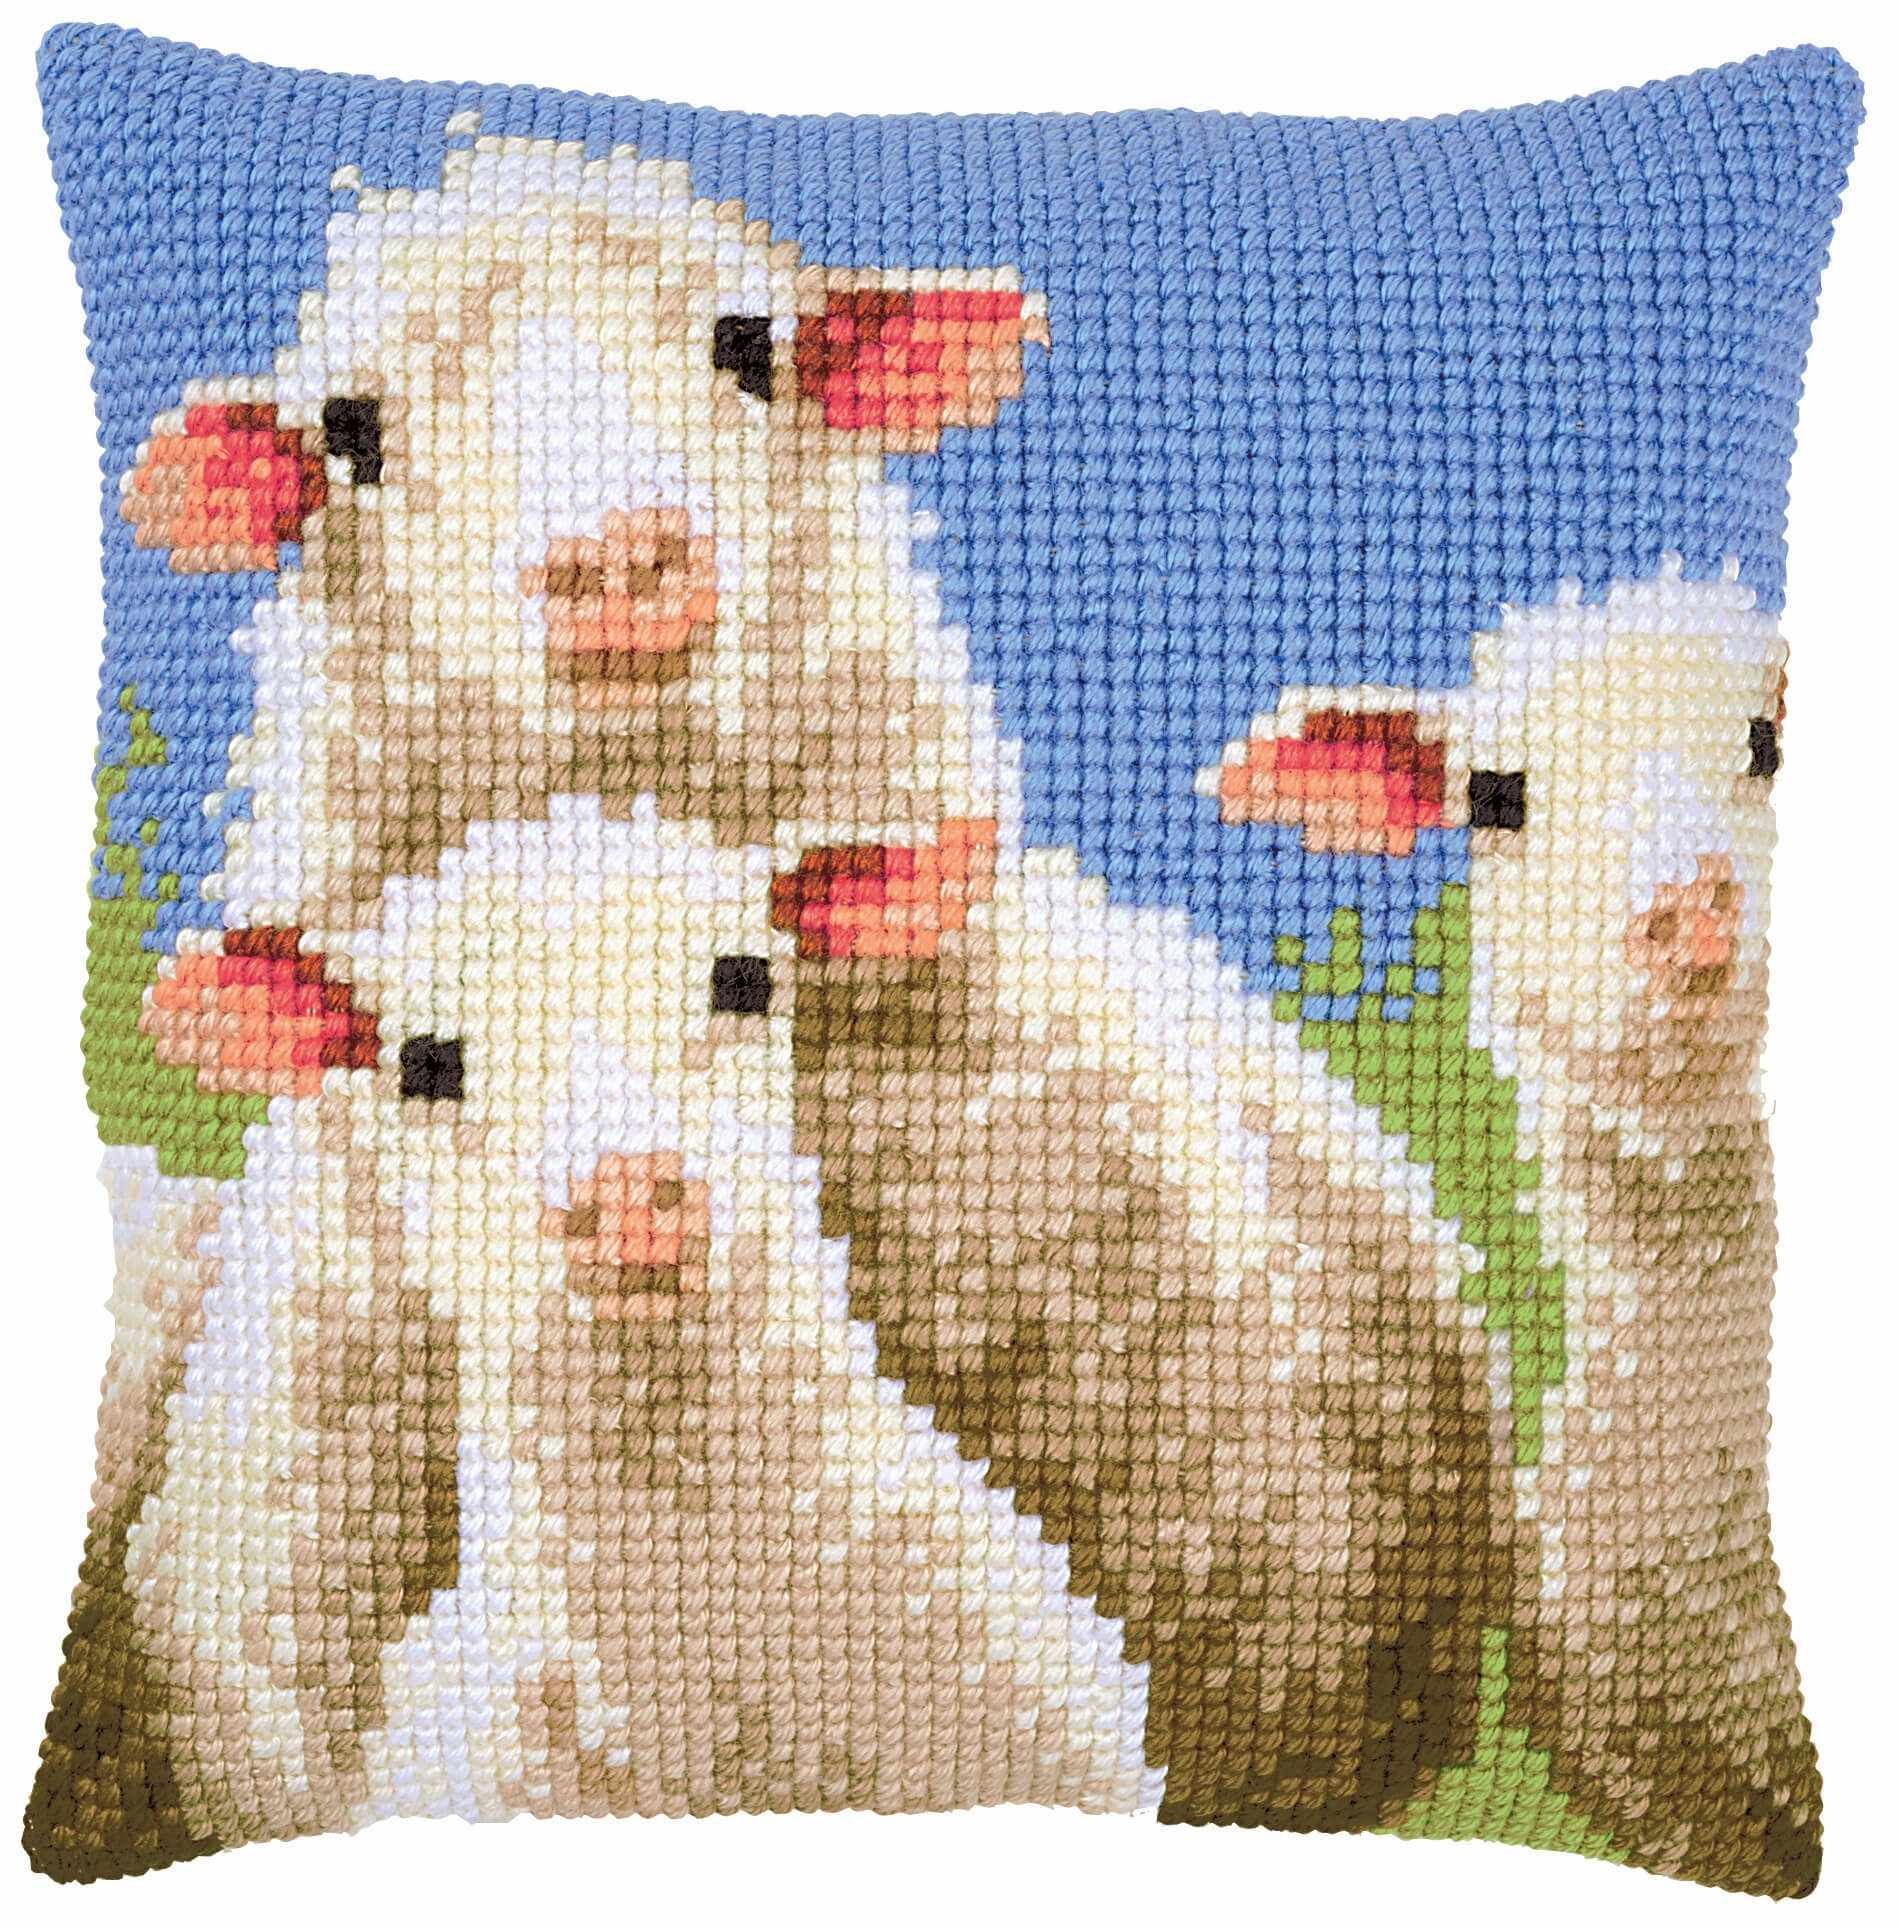 PN-0157426 Curious sheep (Vervaco)